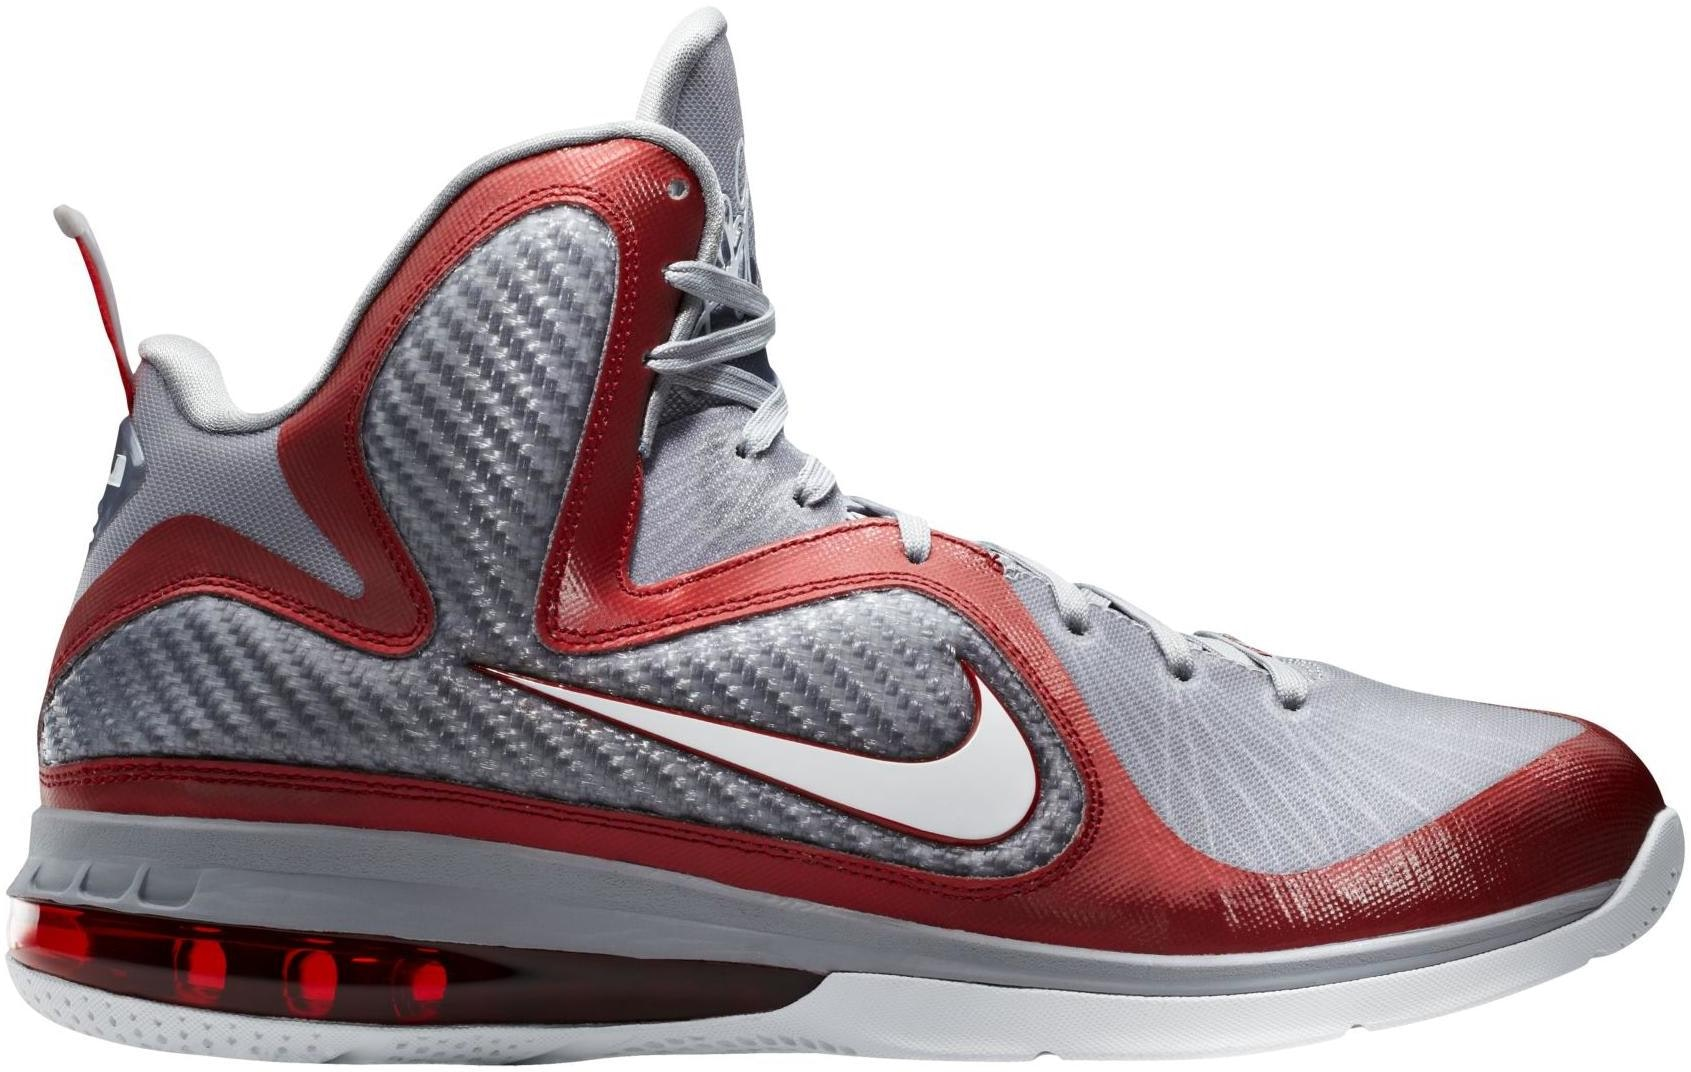 best sneakers 08eb8 dbf6f nike lebron 9 china for sale uk